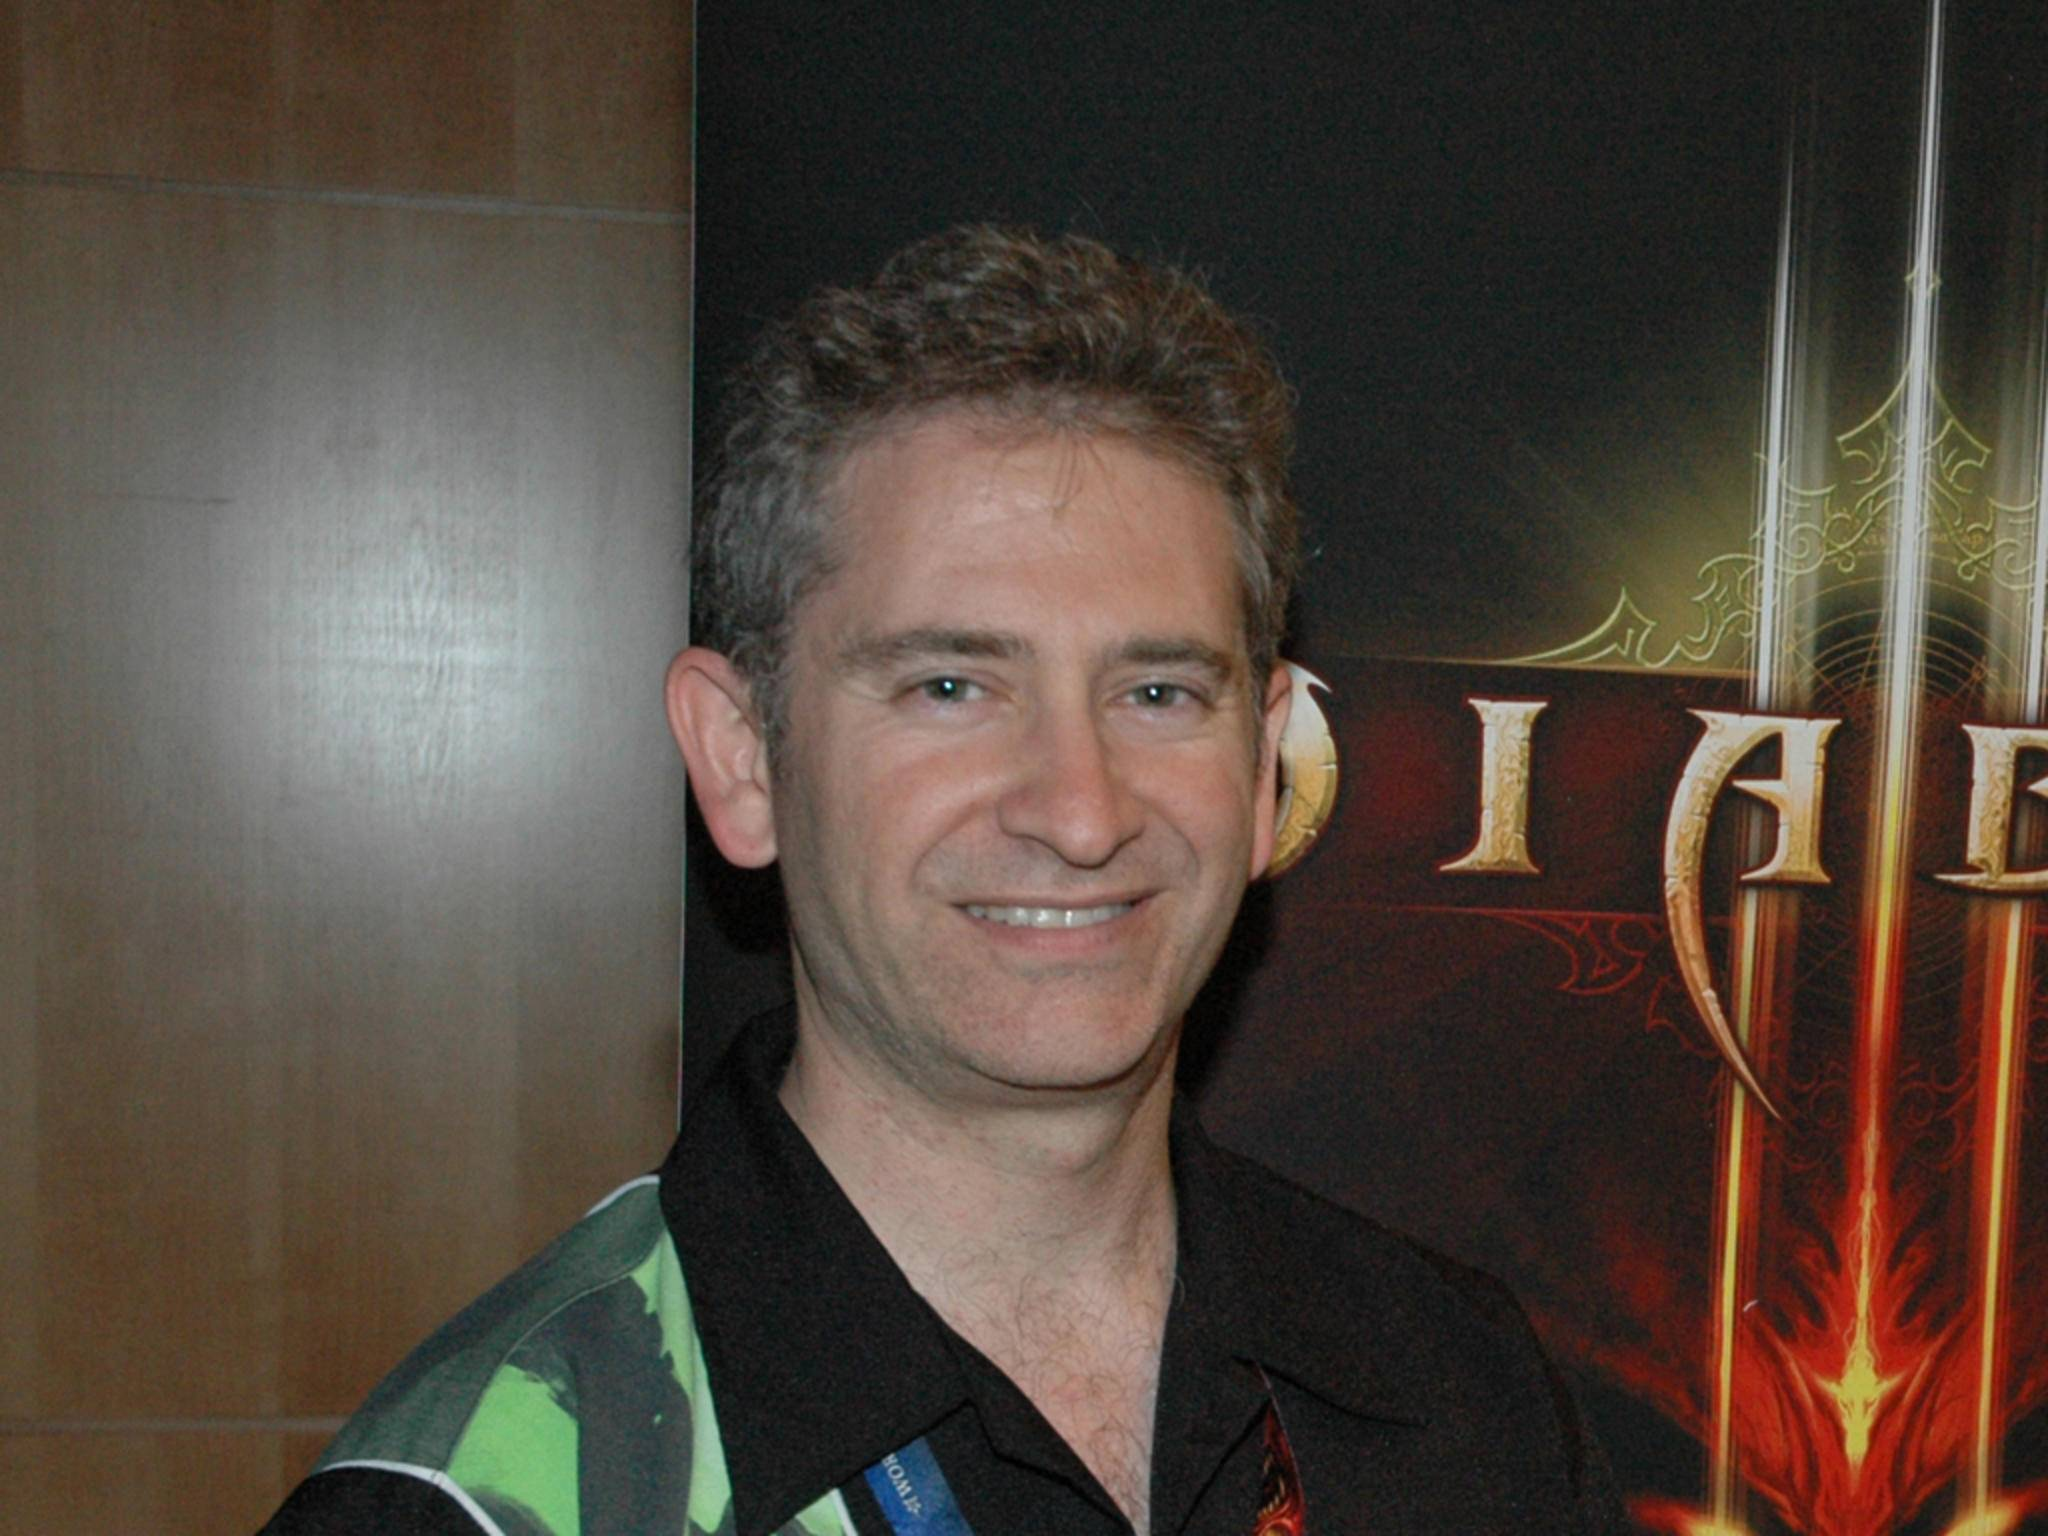 Blizzard-Boss Mike Morhaime.